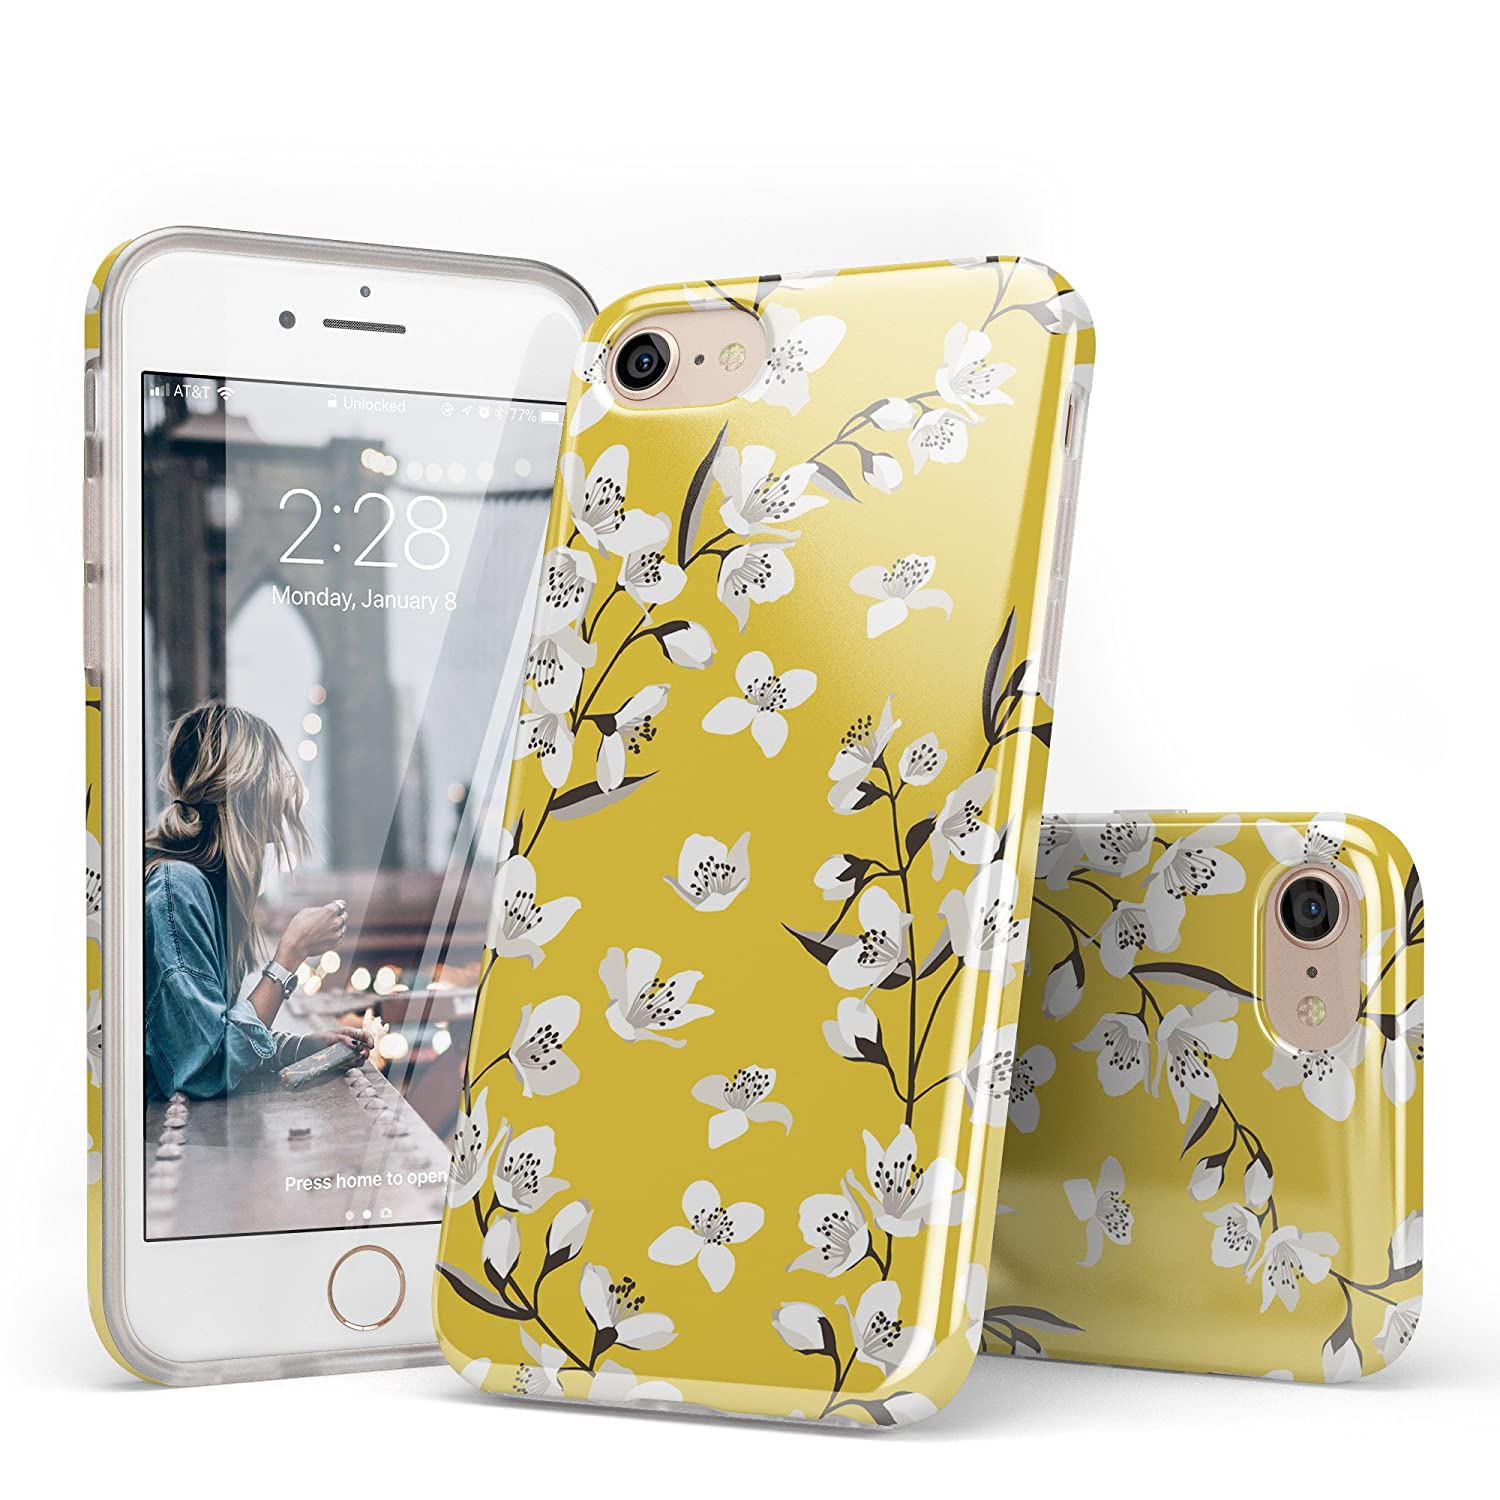 designer fashion 3ce78 37fd0 iPhone 8 Case for Girls, iPhone 7 Case Flower, CASELY White Yellow Floral  Pattern Design Clear Bumper TPU Gel Slim Soft Flexible Rubber Silicone  Cover ...